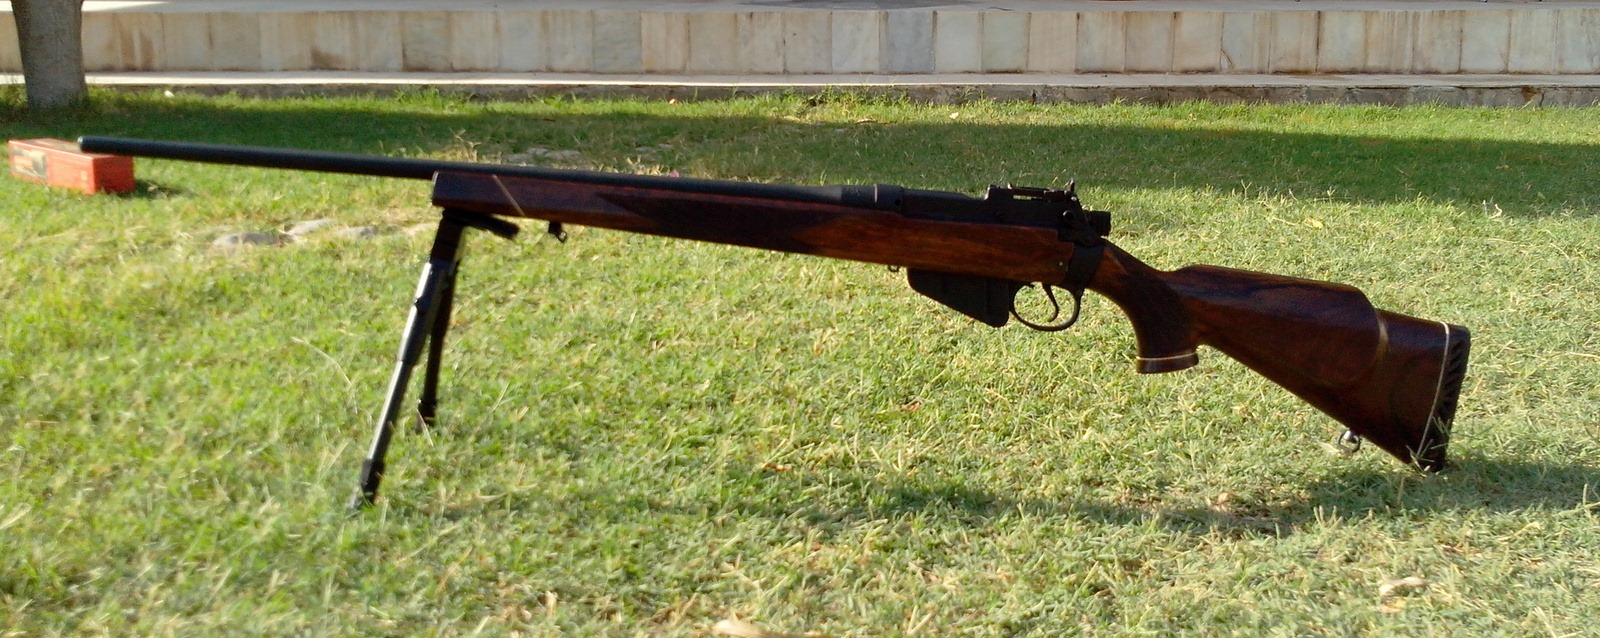 Modifying my Lee Enfield No4 Mk1 – My Random Ramblings